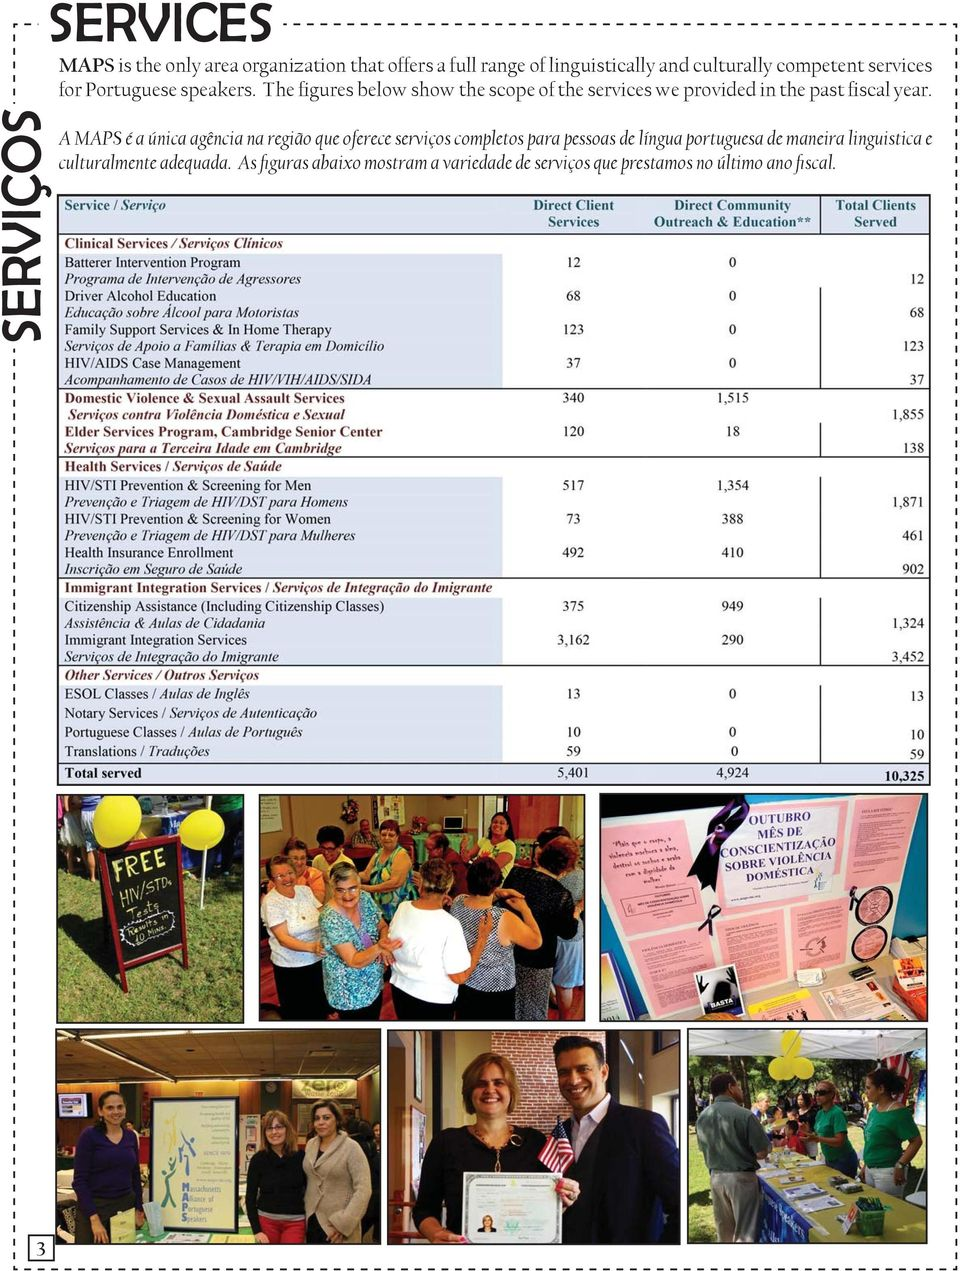 The figures below show the scope of the services we provided in the past fiscal year.